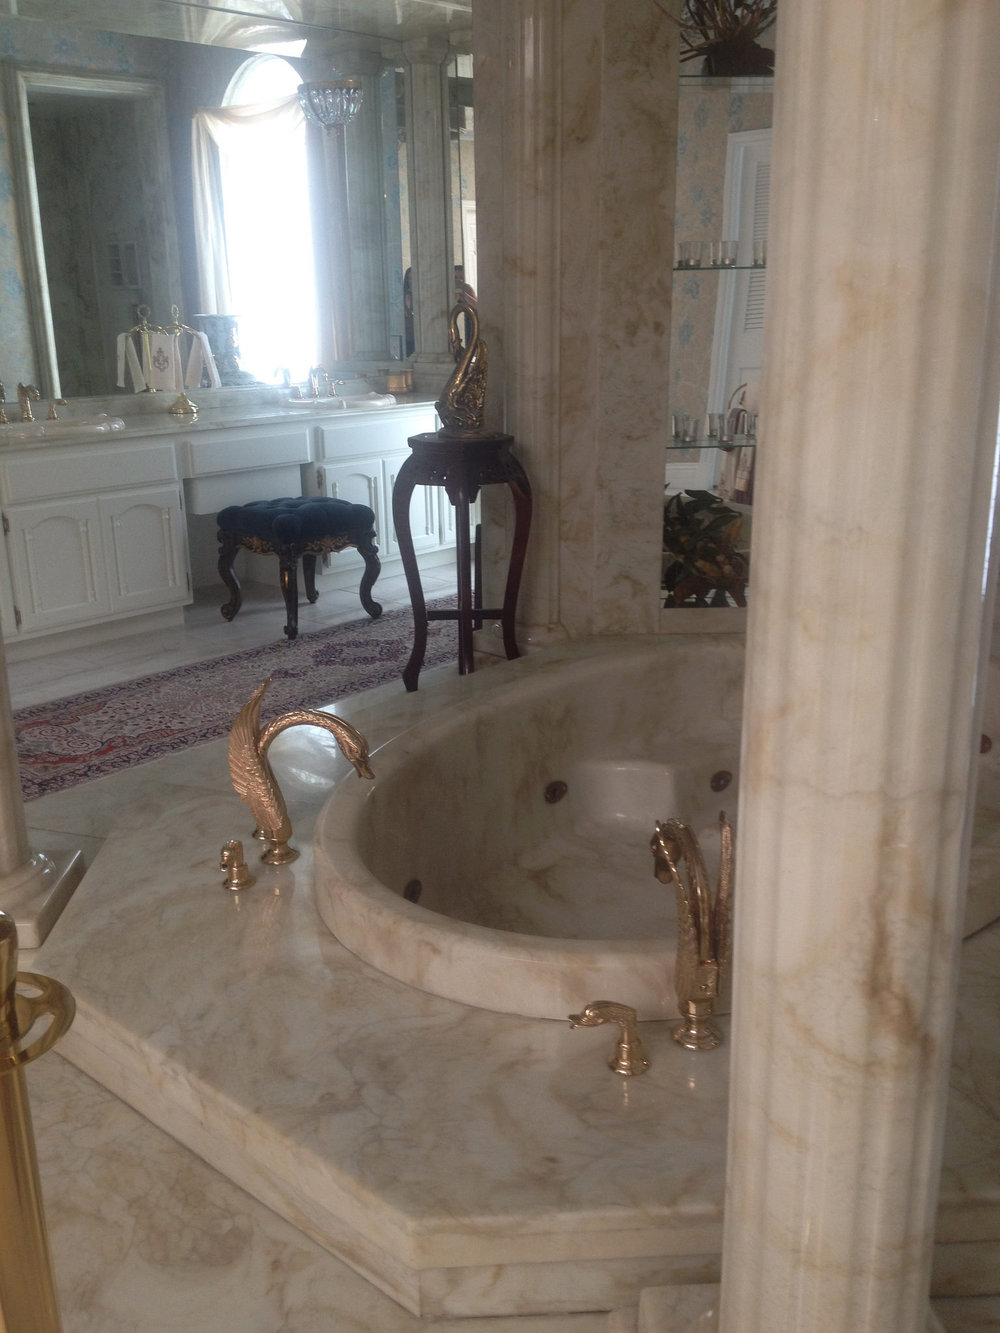 Just your everyday bathtub